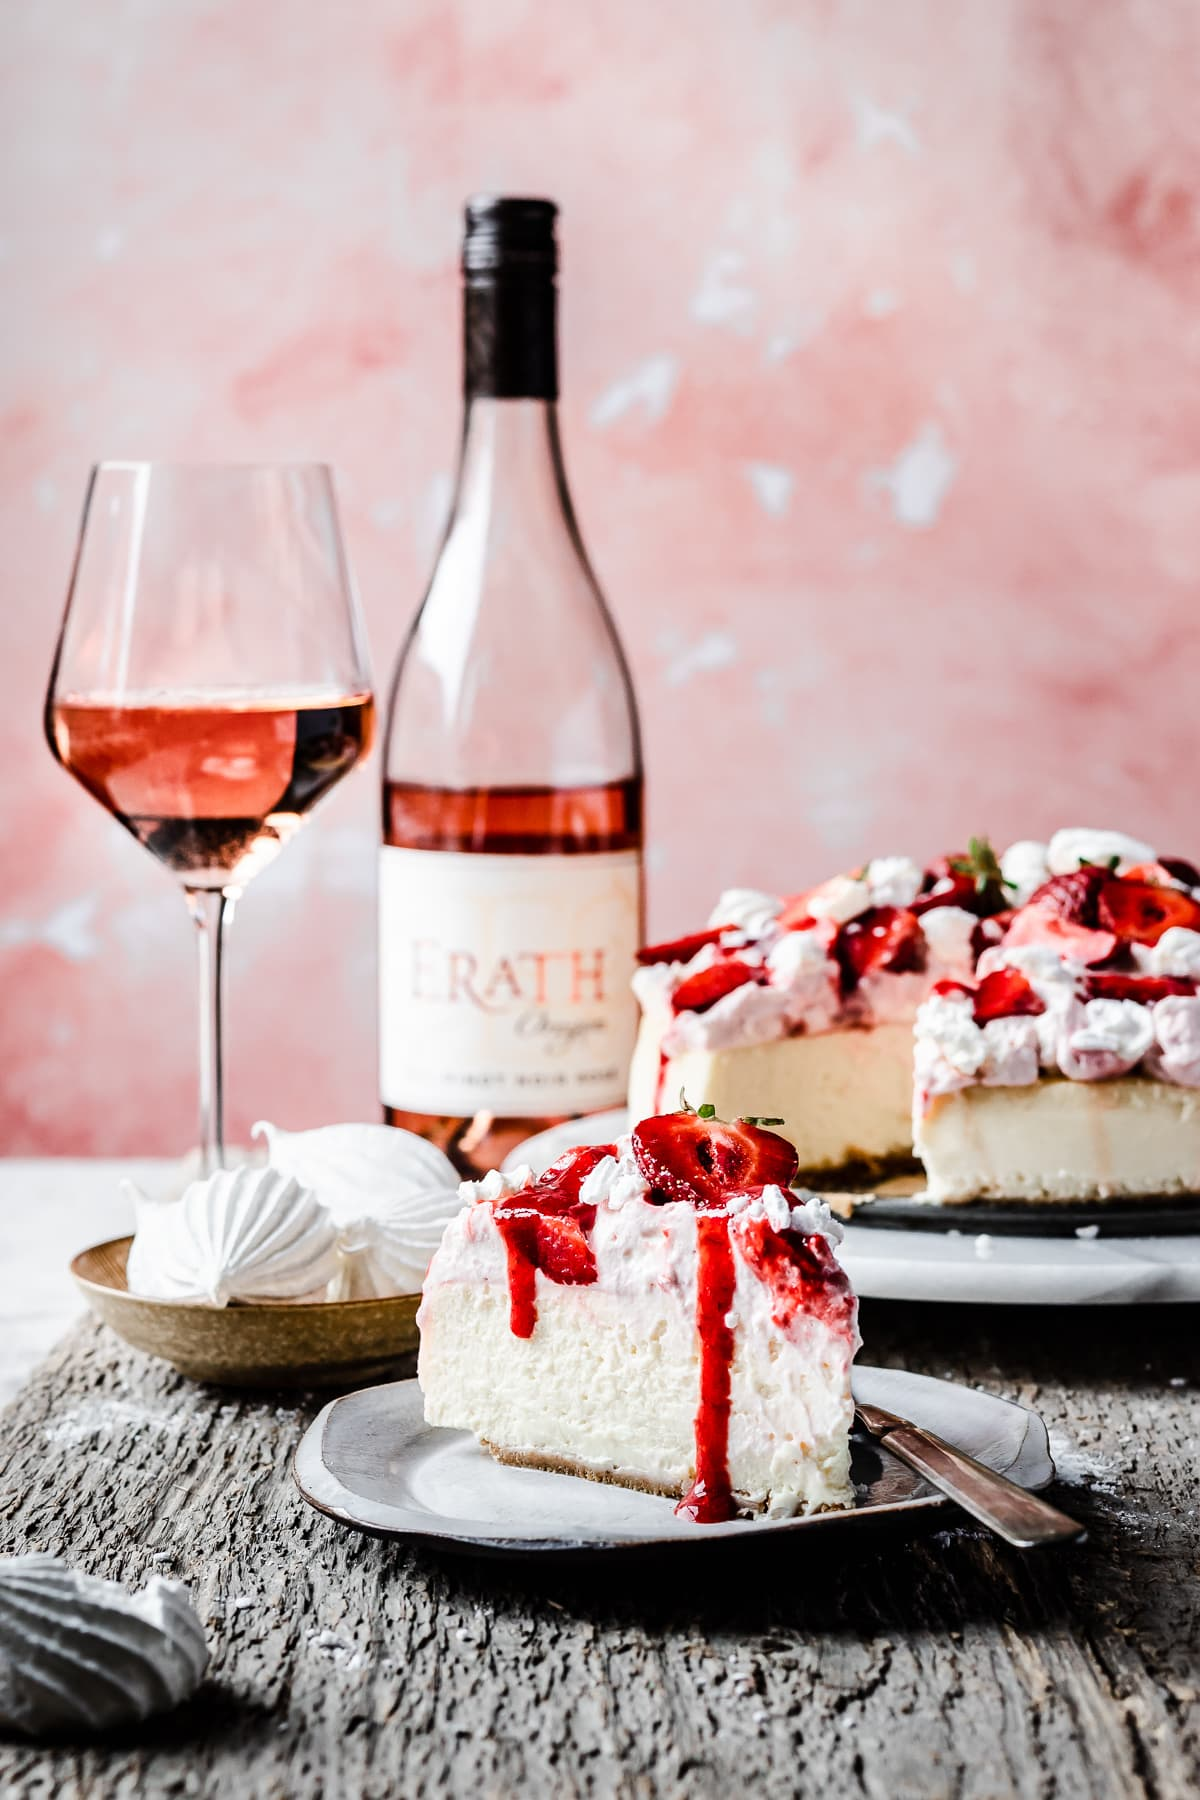 A slice of strawberry eton mess cheesecake on a plate with the remainder of the cheesecake in the background. A glass of rosé wine and a wine bottle sit nearby. The image has a pale pink background.